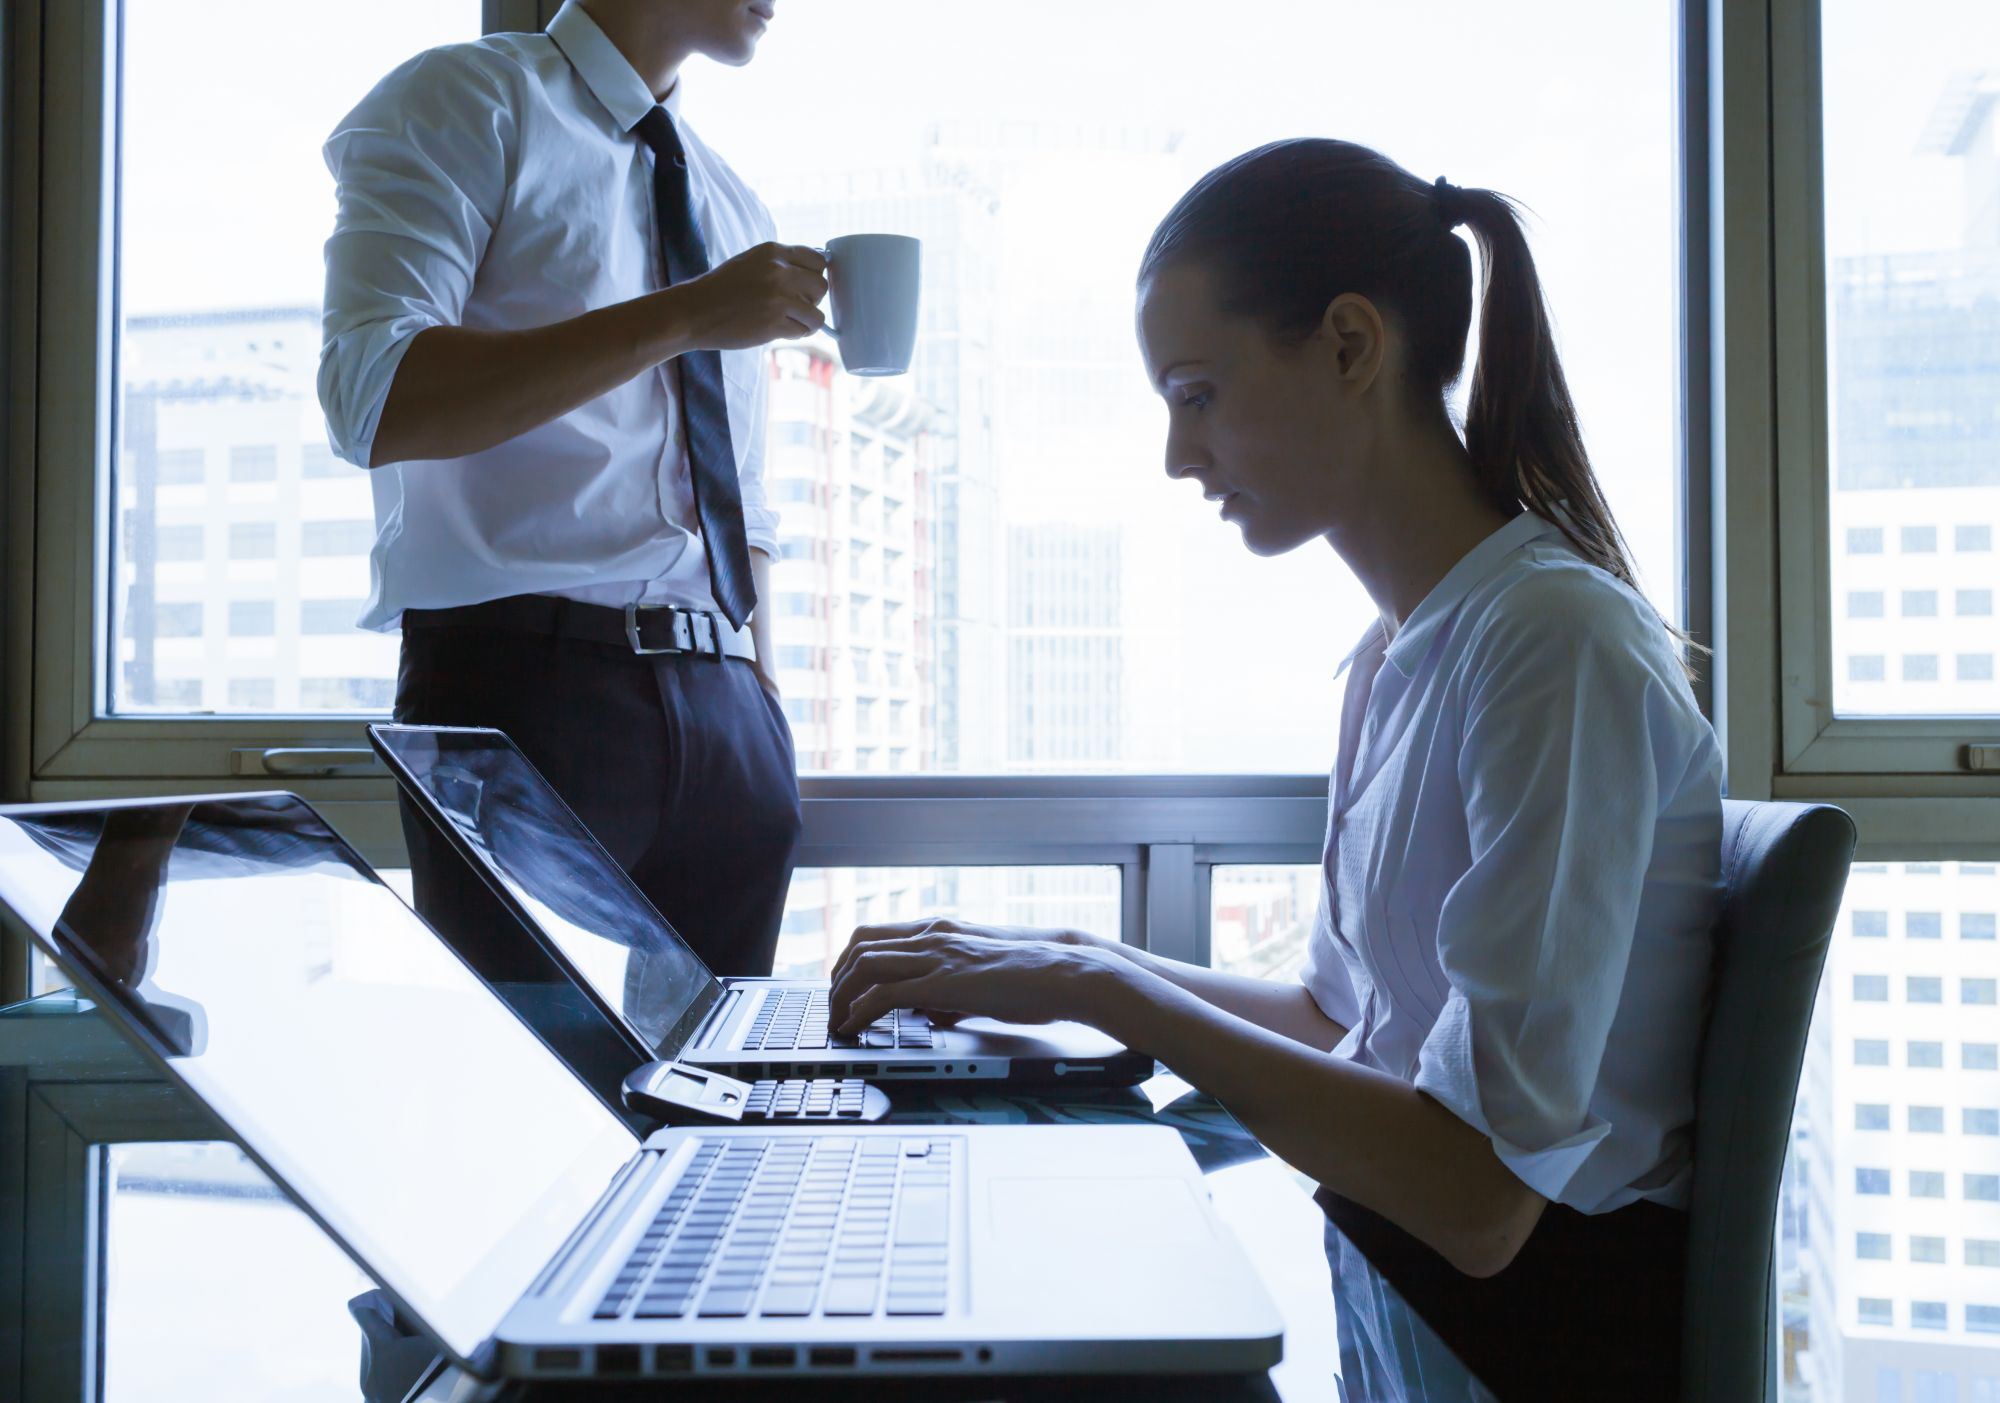 Breaking the workplace code of silence